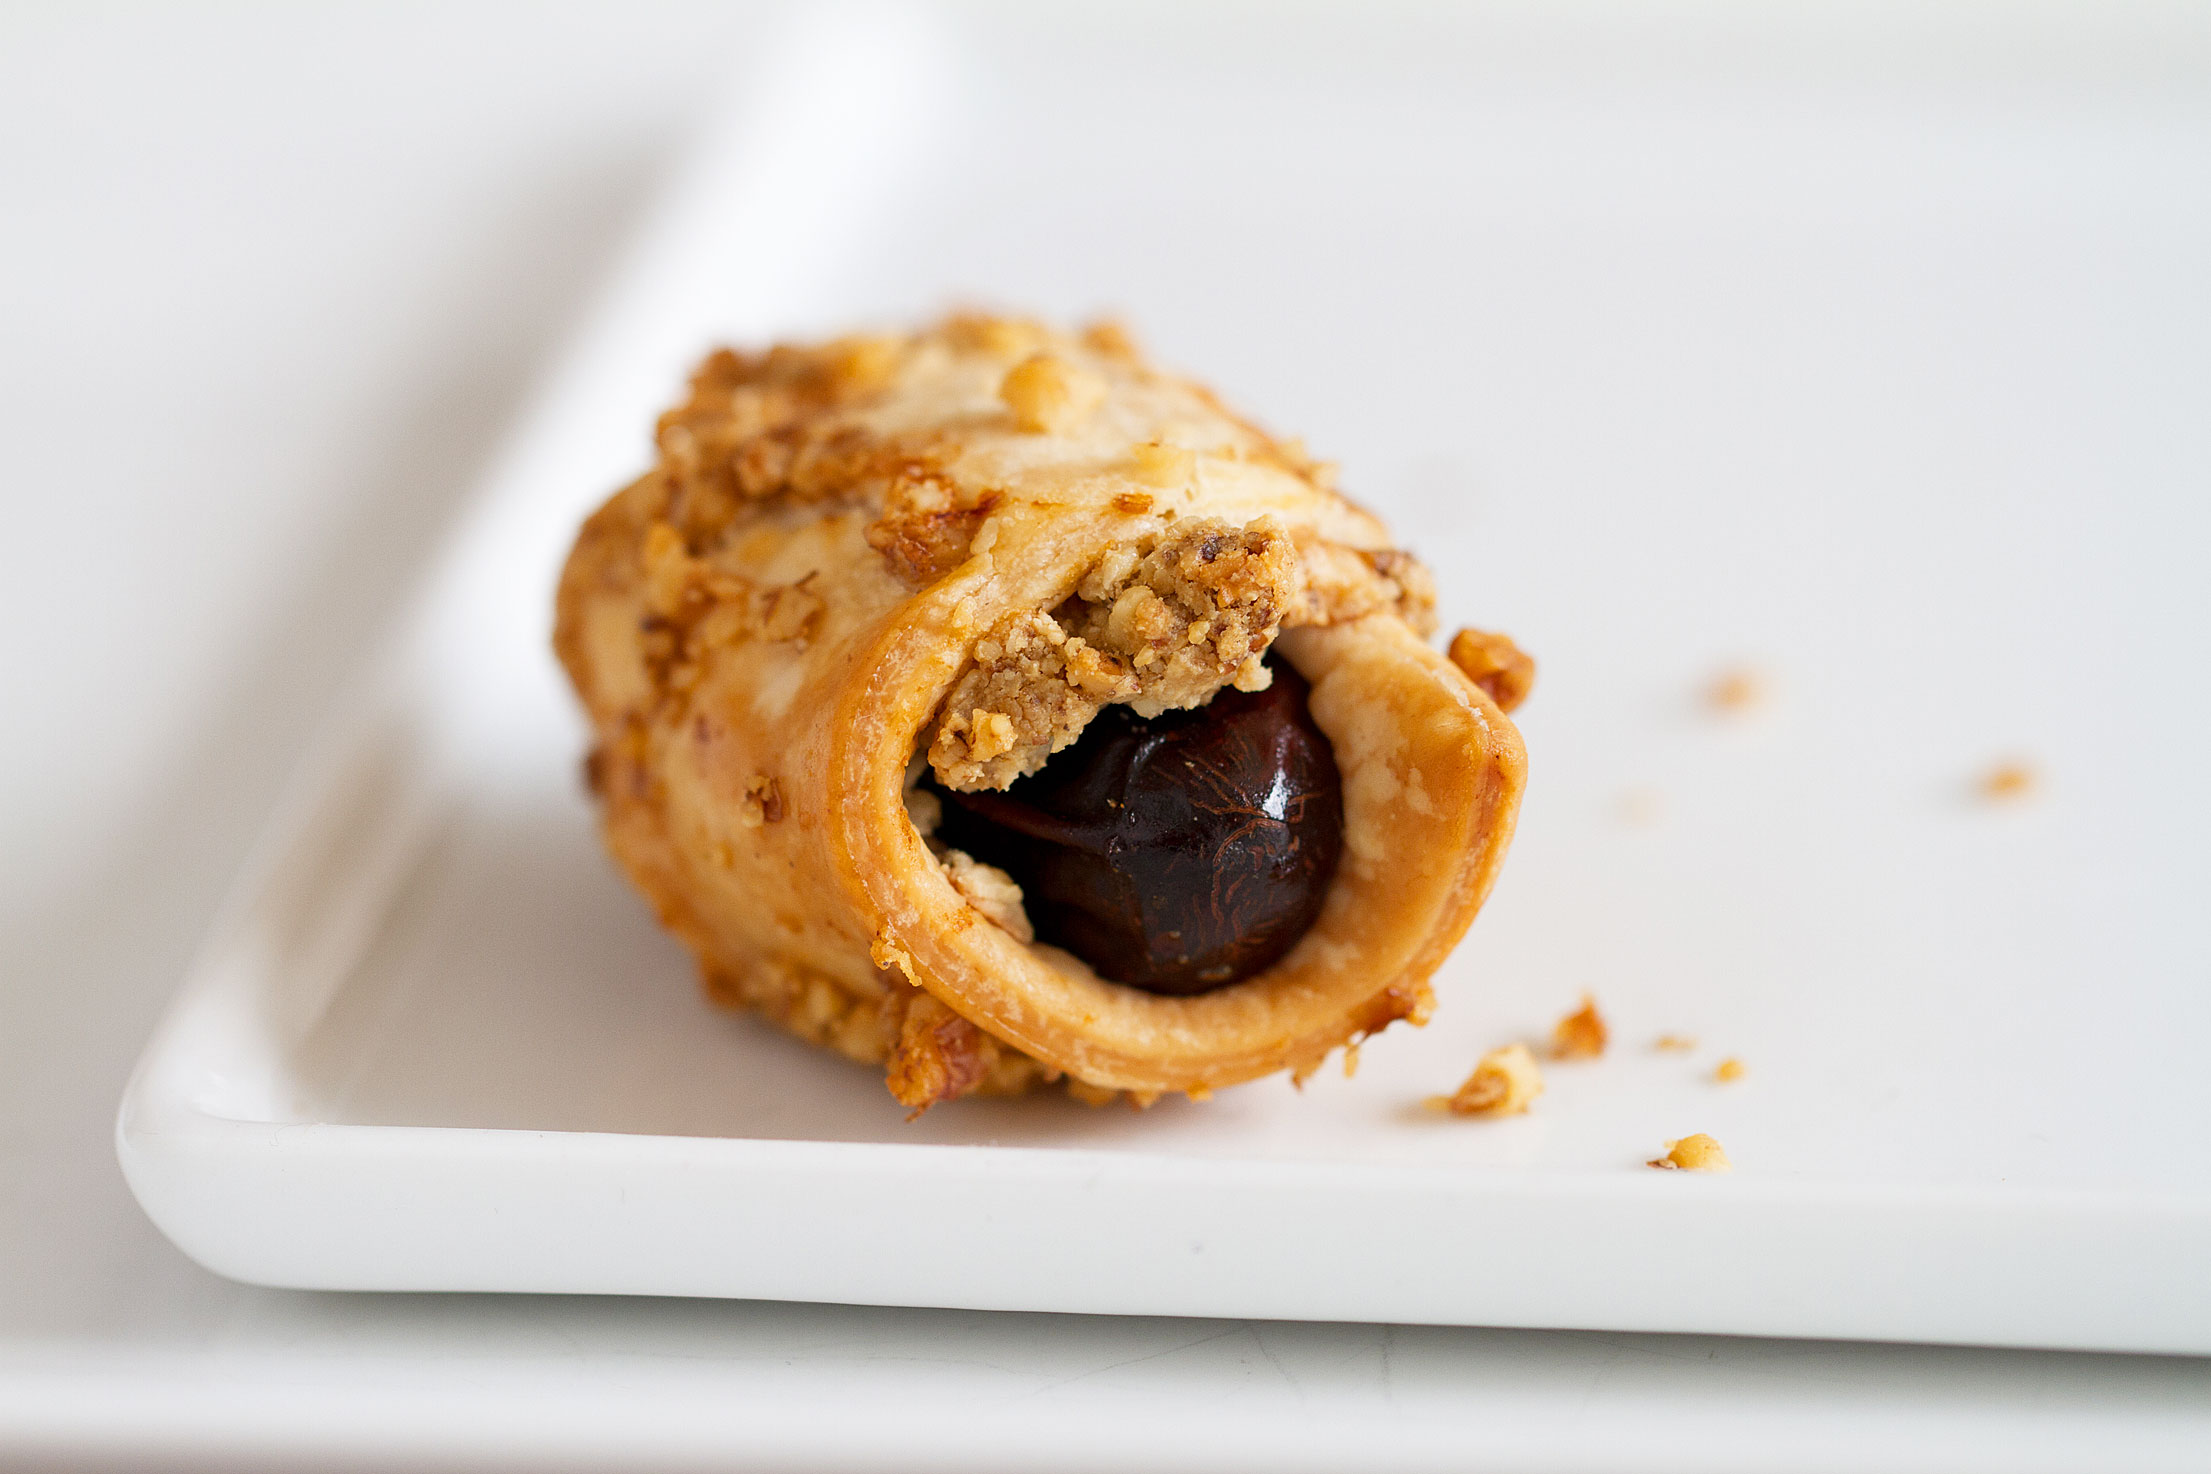 Savory Rugelach with Blue Cheese, Dates, and Walnuts